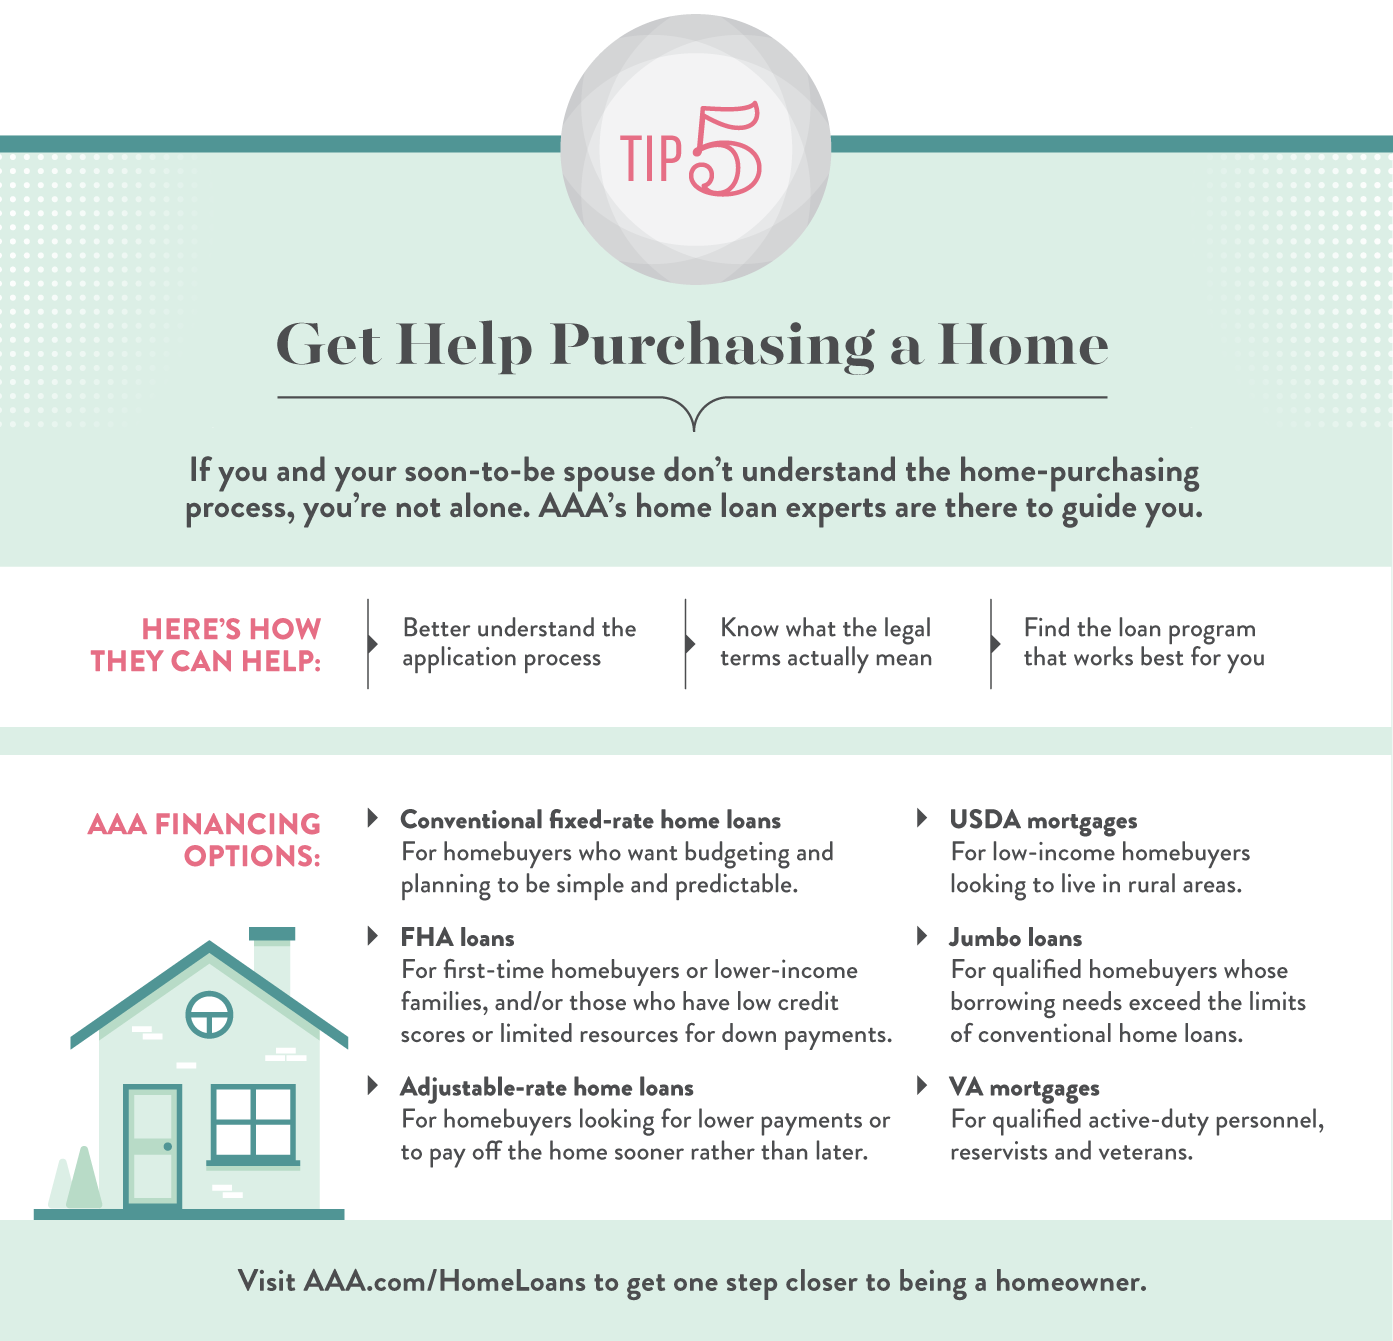 Tips for newly engaged home